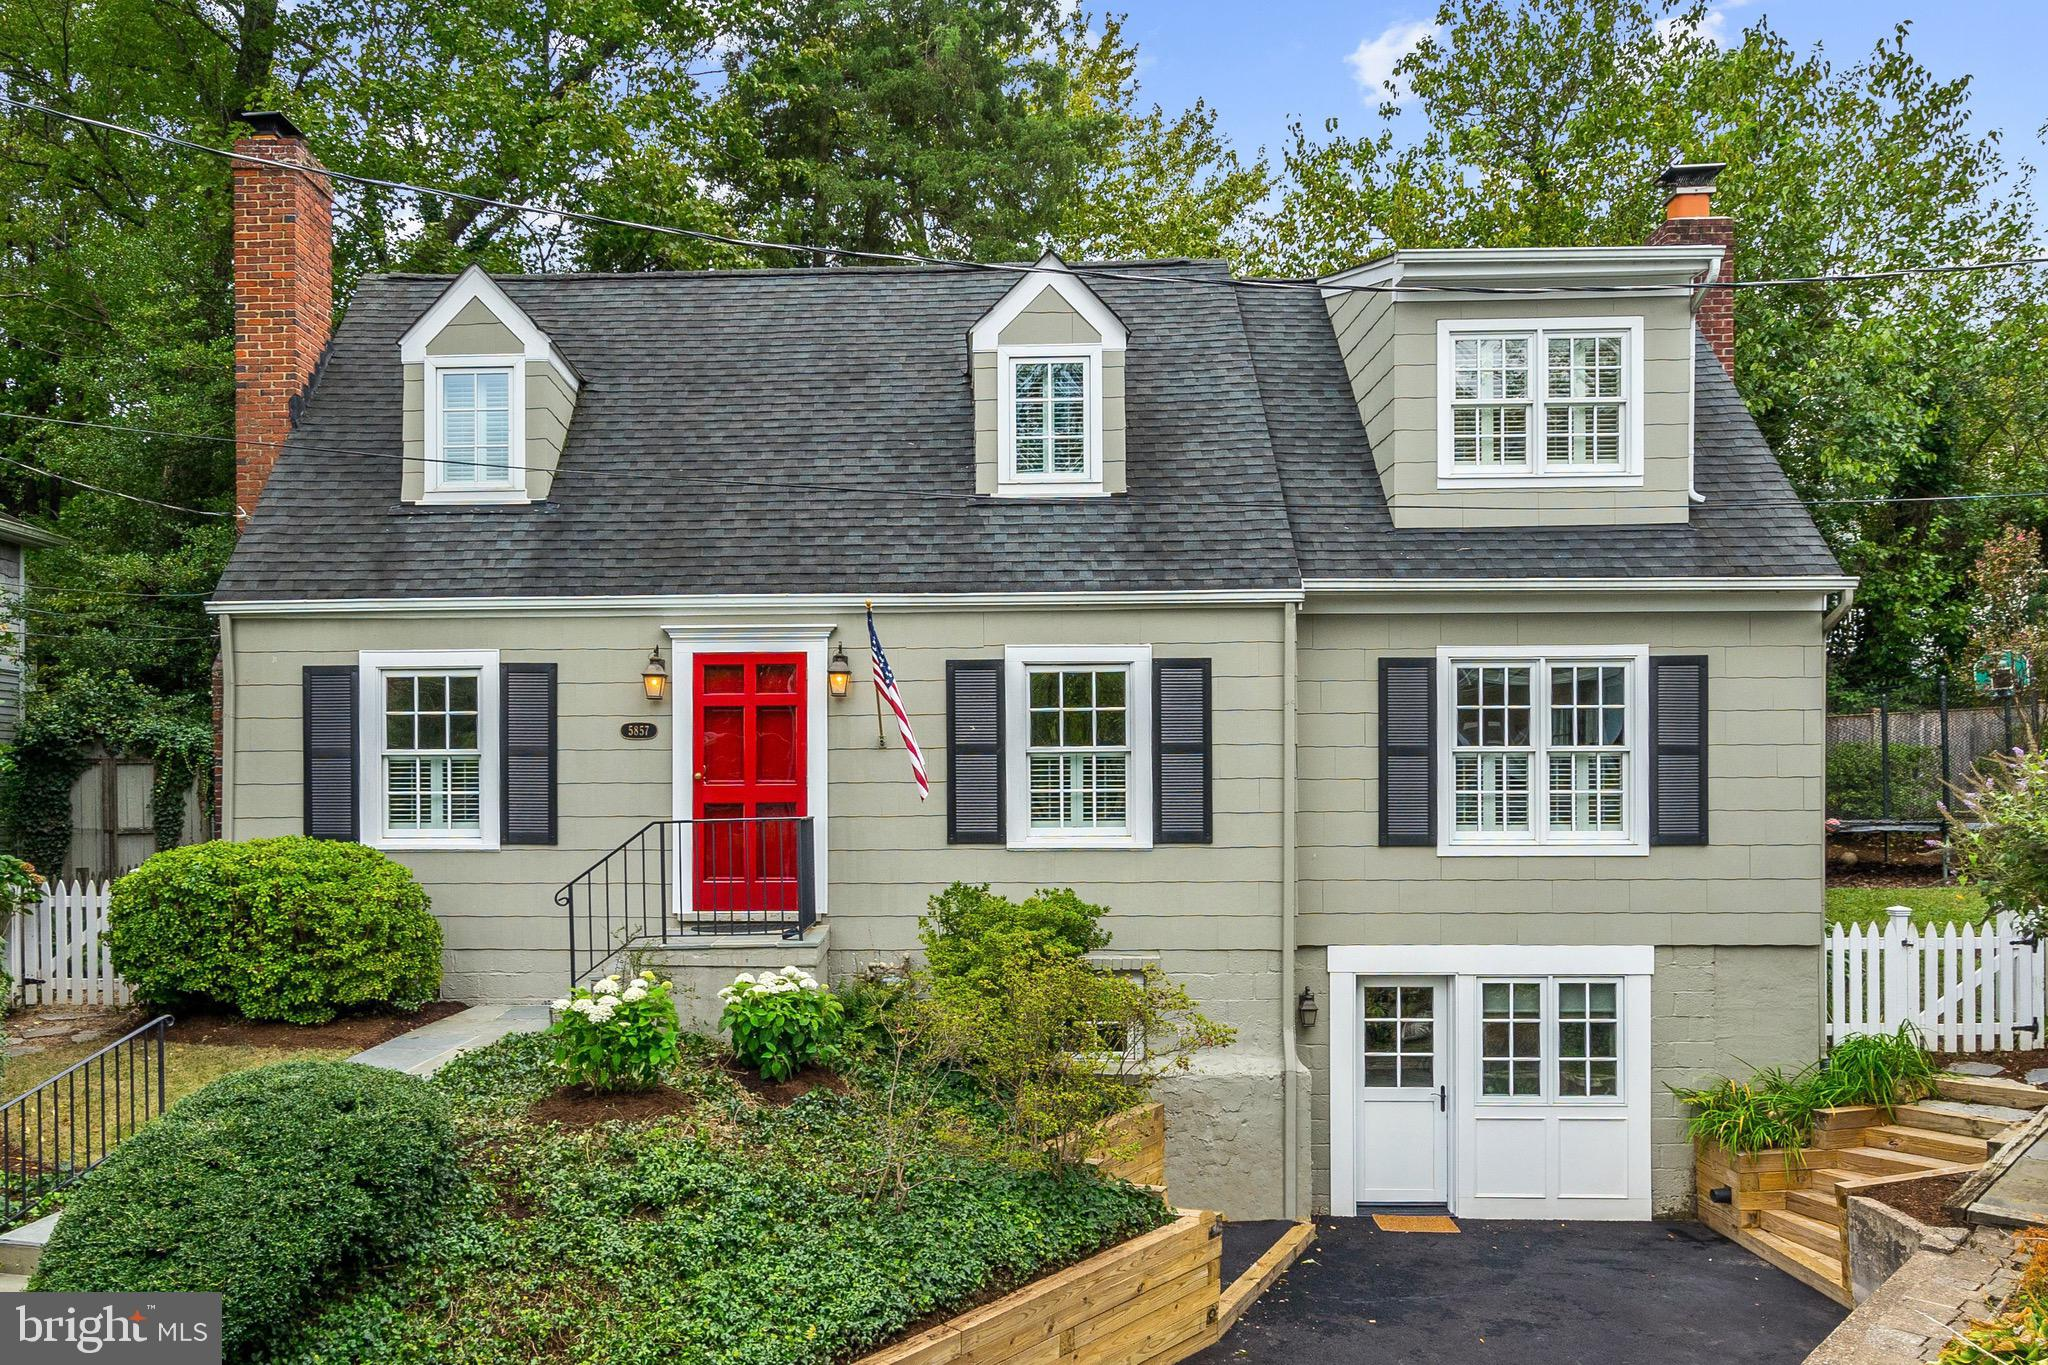 Offers Due 4pm Monday September 30. Beautifully renovated and expanded 5 bedroom, 4 bath home on a quiet cul-de-sac in Westover, backing to Parkhurst Park. This surprisingly spacious Cape Cod comes loaded with charm and features a handsome formal dining room with wood burning fireplace and a cozy sitting room with great storage. Enjoy a custom kitchen complete with granite counters, recessed lights and stainless steel appliances. An adjoining breakfast room steps out to a rear deck and fully fenced back yard with access to the park. The kitchen opens to a well-proportioned family room with a woodburning fireplace and built-in bookshelves. Step right out the French doors to a lovely screened porch. A main level office/bedroom with built-in bookshelves and an attached bath provides a private retreat for guests. Upstairs find a master suite with vaulted ceilings, a walk-in closet and luxurious bath with shower and soaking tub. Down the hall two more bedrooms share an updated hall bath and a conveniently located laundry room. A lower level rec room with plenty of storage is followed by a fifth bedroom with private entrance and updated hall bath. Walk out the rear gate to enjoy Parkhurst Park and a quick walk to Westover and the new (to-be-built) elementary school.Moments to I-66, East Falls Church Metro and loads of shops and restaurants!